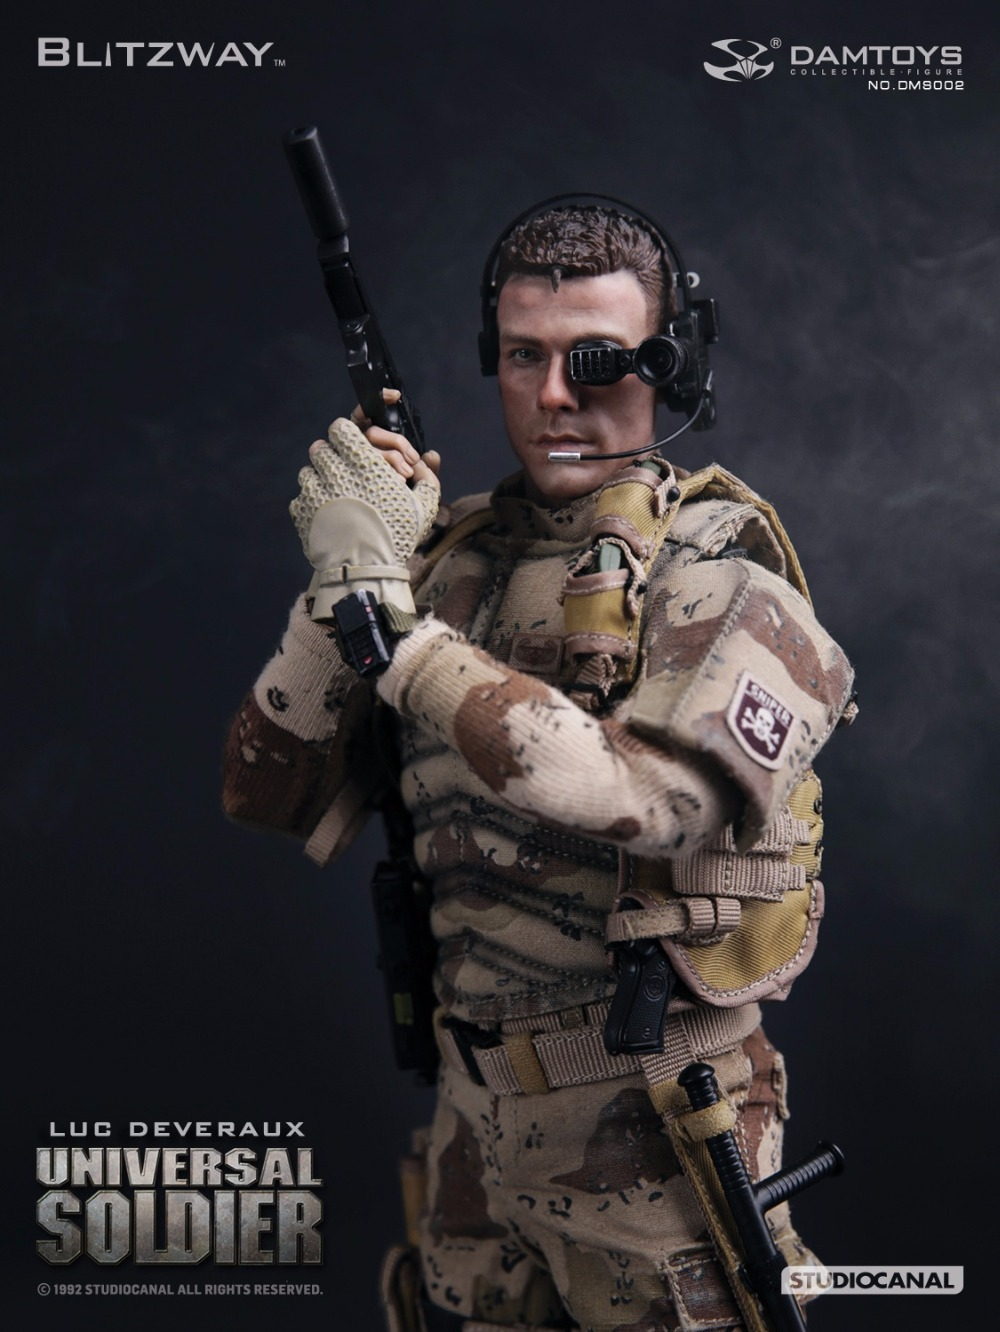 1/6 Super flexible military figure 12 action figure doll Collectible model Universal Soldier Luc Deveraux jean-claude van damme фигурка planet of the apes action figure classic gorilla soldier 2 pack 18 см